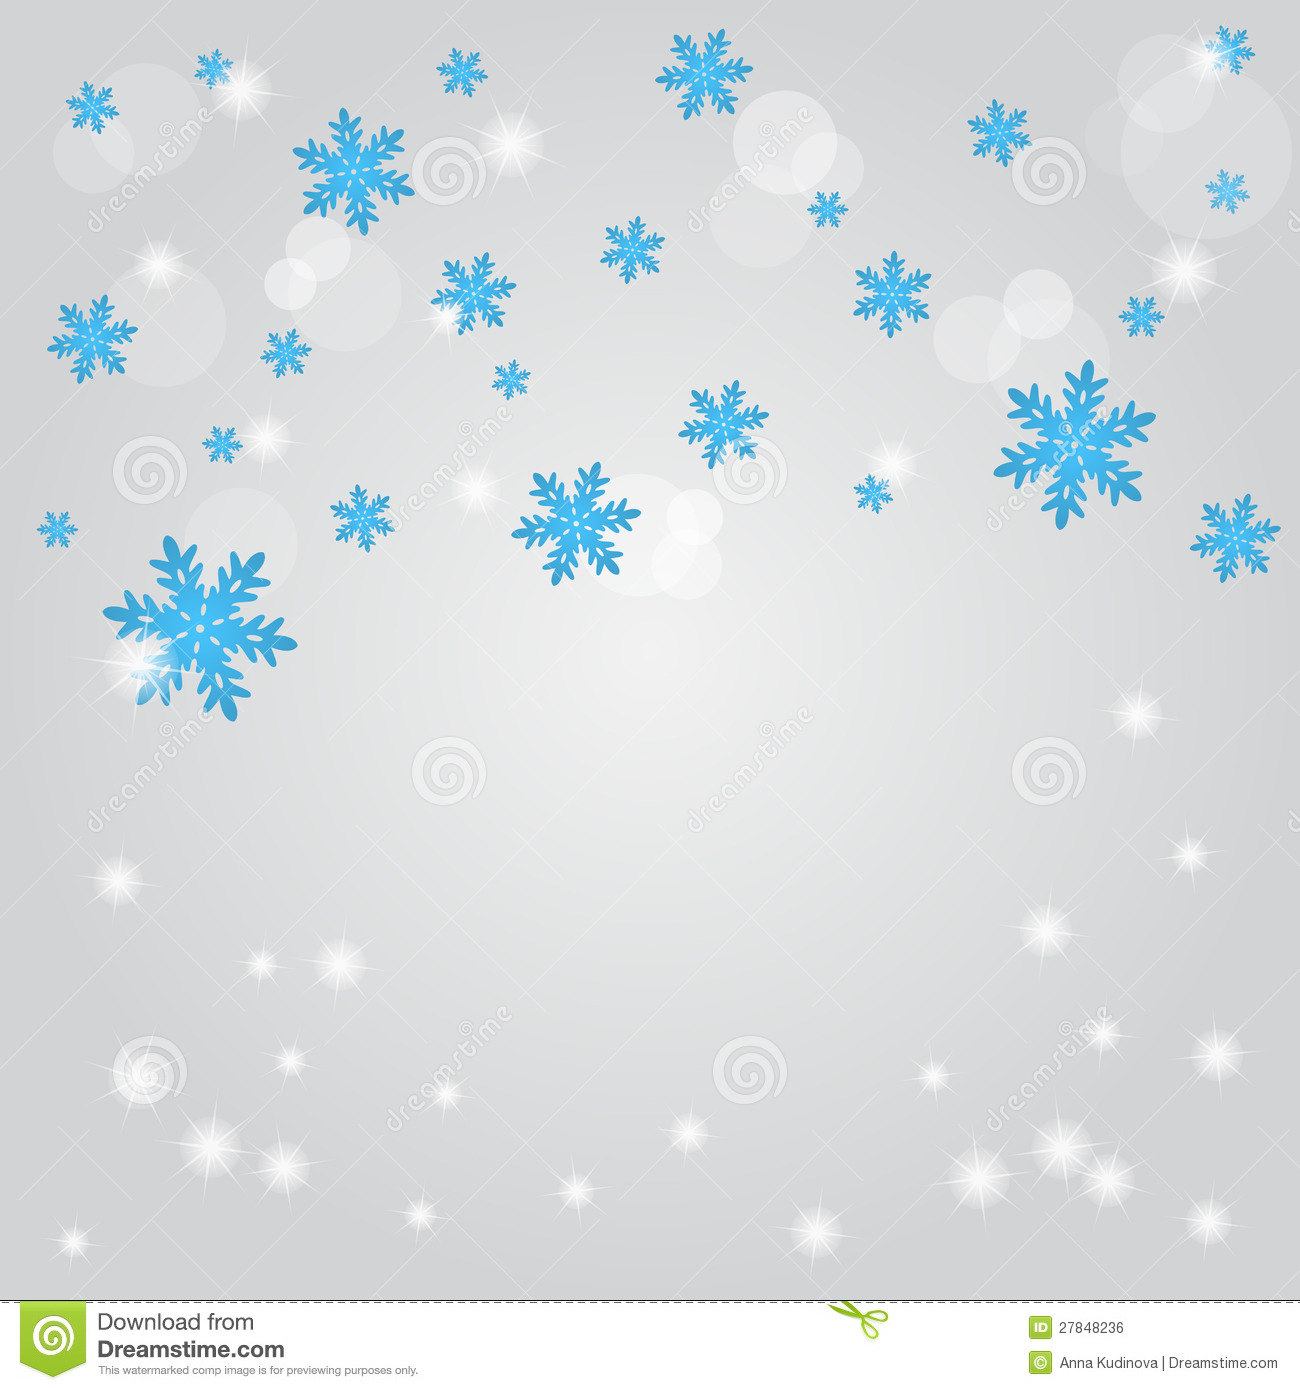 hight resolution of snow fall abstract winter background stock illustrations 7 213 snow fall abstract winter background stock illustrations vectors clipart dreamstime